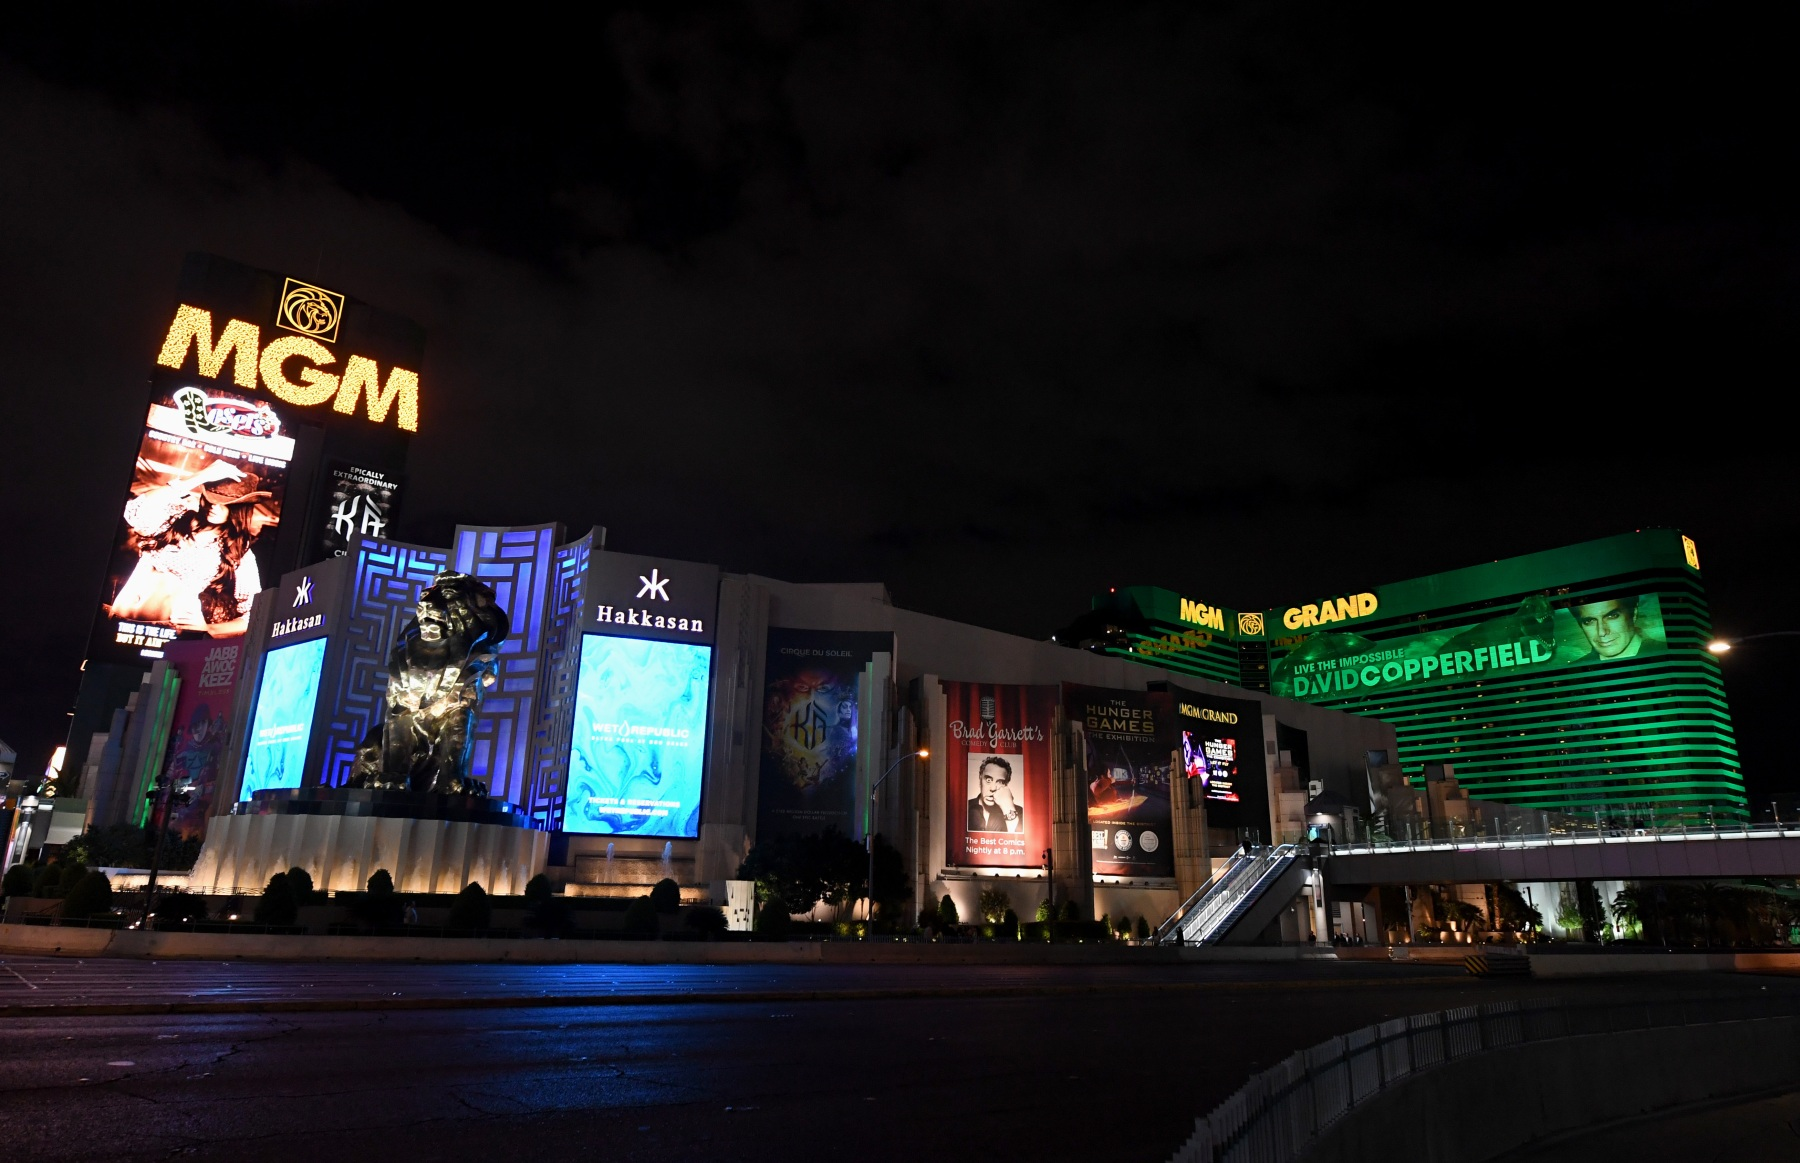 LAS VEGAS, NEVADA - MARCH 14:  An exterior view shows MGM Grand & Hotel & Casino as the coronavirus continues to spread across the United States on March 14, 2020 in Las Vegas, Nevada. Several employees at MGM Resorts International hotel-casinos on the Las Vegas Strip have tested presumptive positive for COVID-19. MGM Resorts International employees who can will start working from home next week. MGM has closed all nightclubs, dayclubs, buffets, spas, gyms and salons at its properties in Las Vegas and on Monday, it will close 150 food and beverage outlets and furloughs and layoffs will begin. The World Health Organization declared the coronavirus (COVID-19) a global pandemic on March 11th.  (Photo by Ethan Miller/Getty Images)